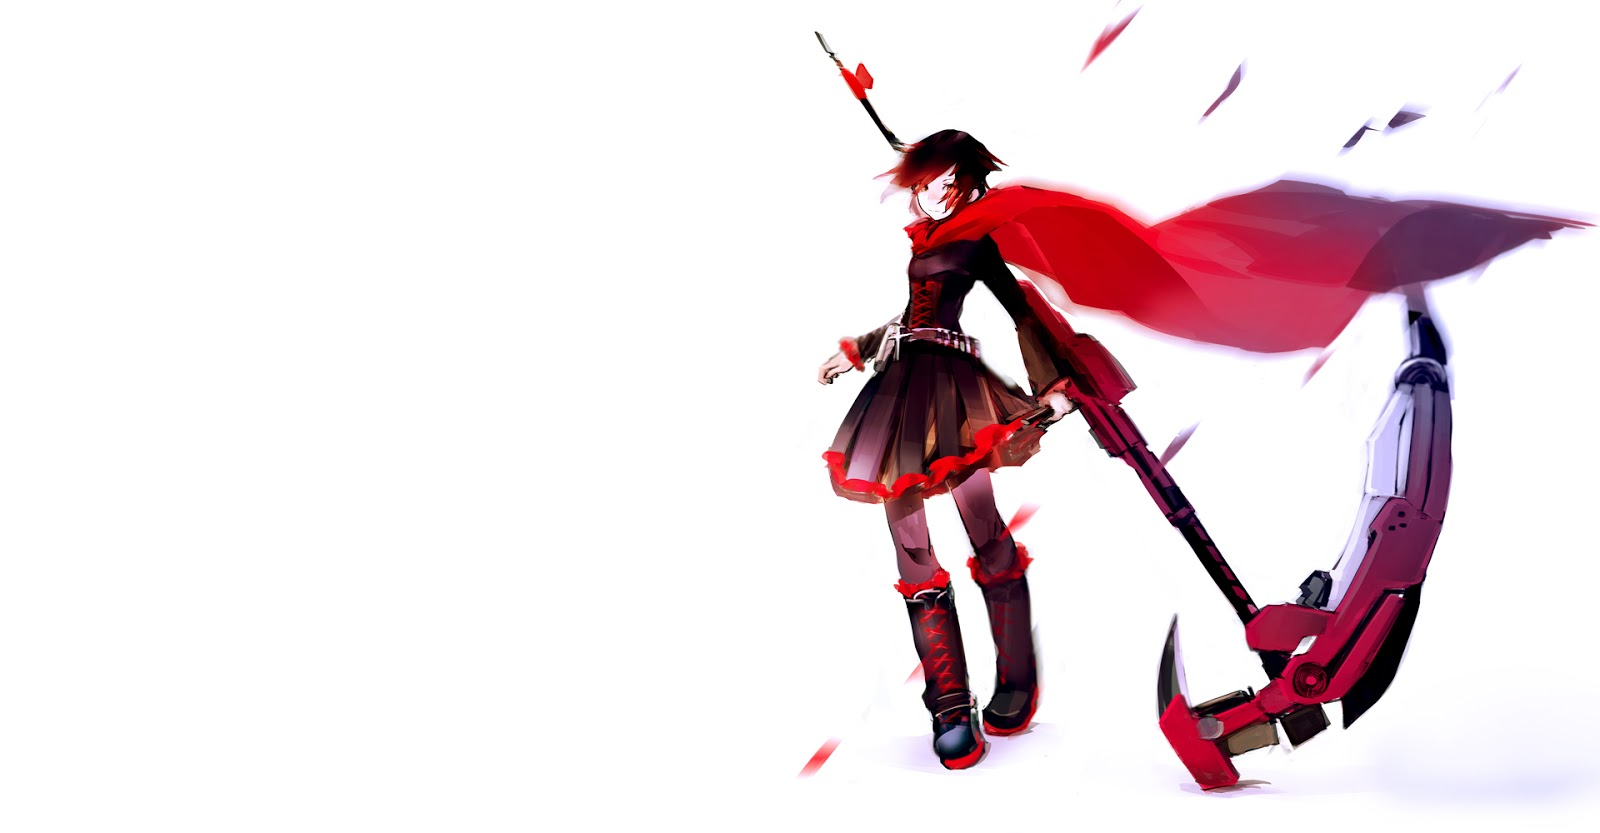 Drawn scythe giant Ruby+rose+red+rwby+wallpaper+%5Bwww anim Discussion Handled Scythe